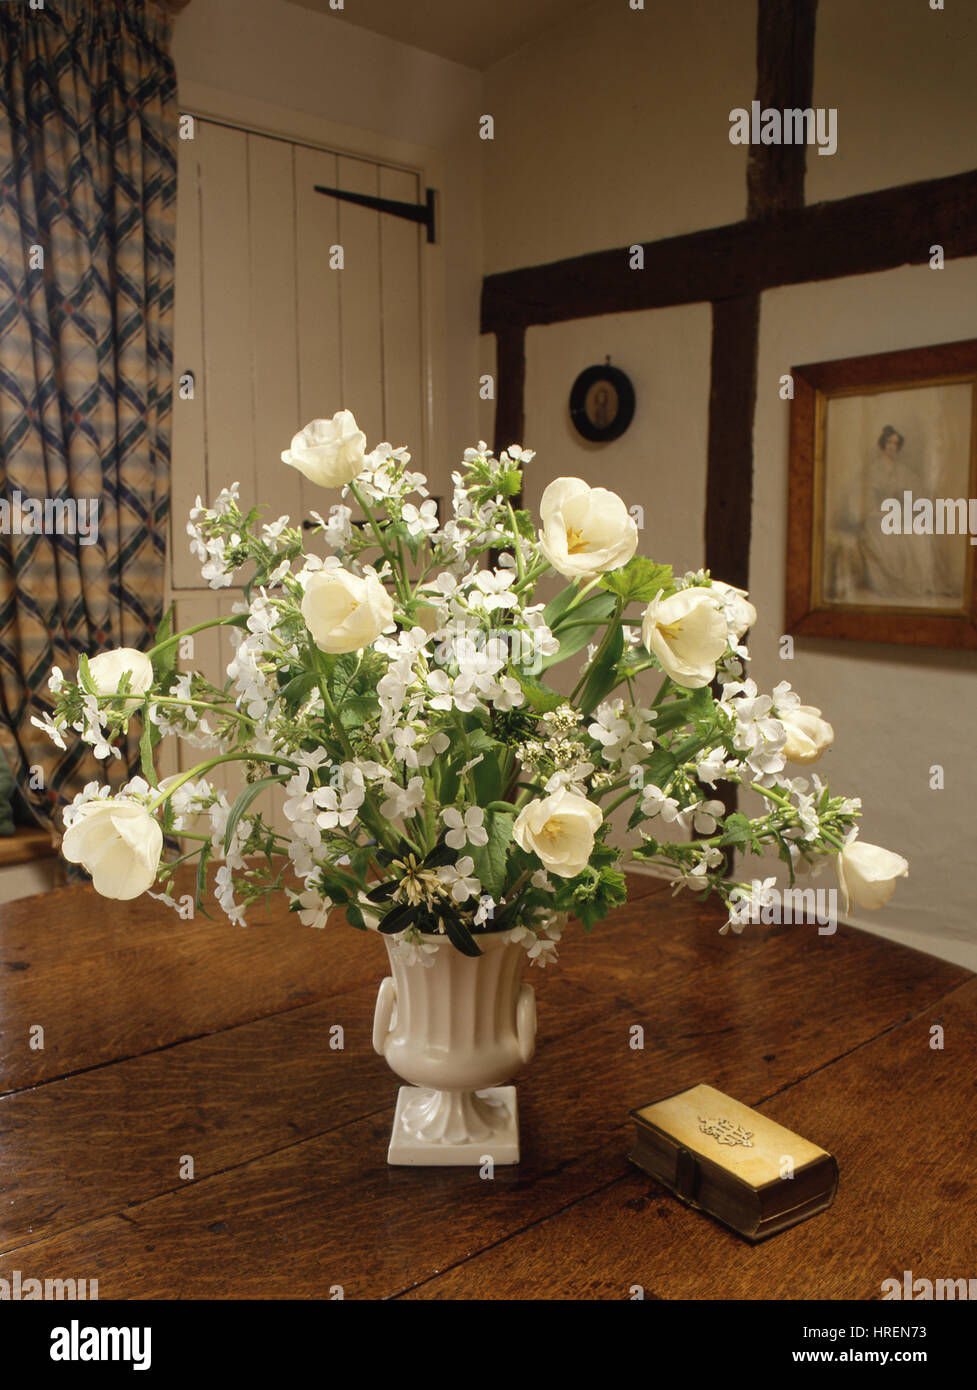 All White Flower Arrangement In A English Cottage Setting